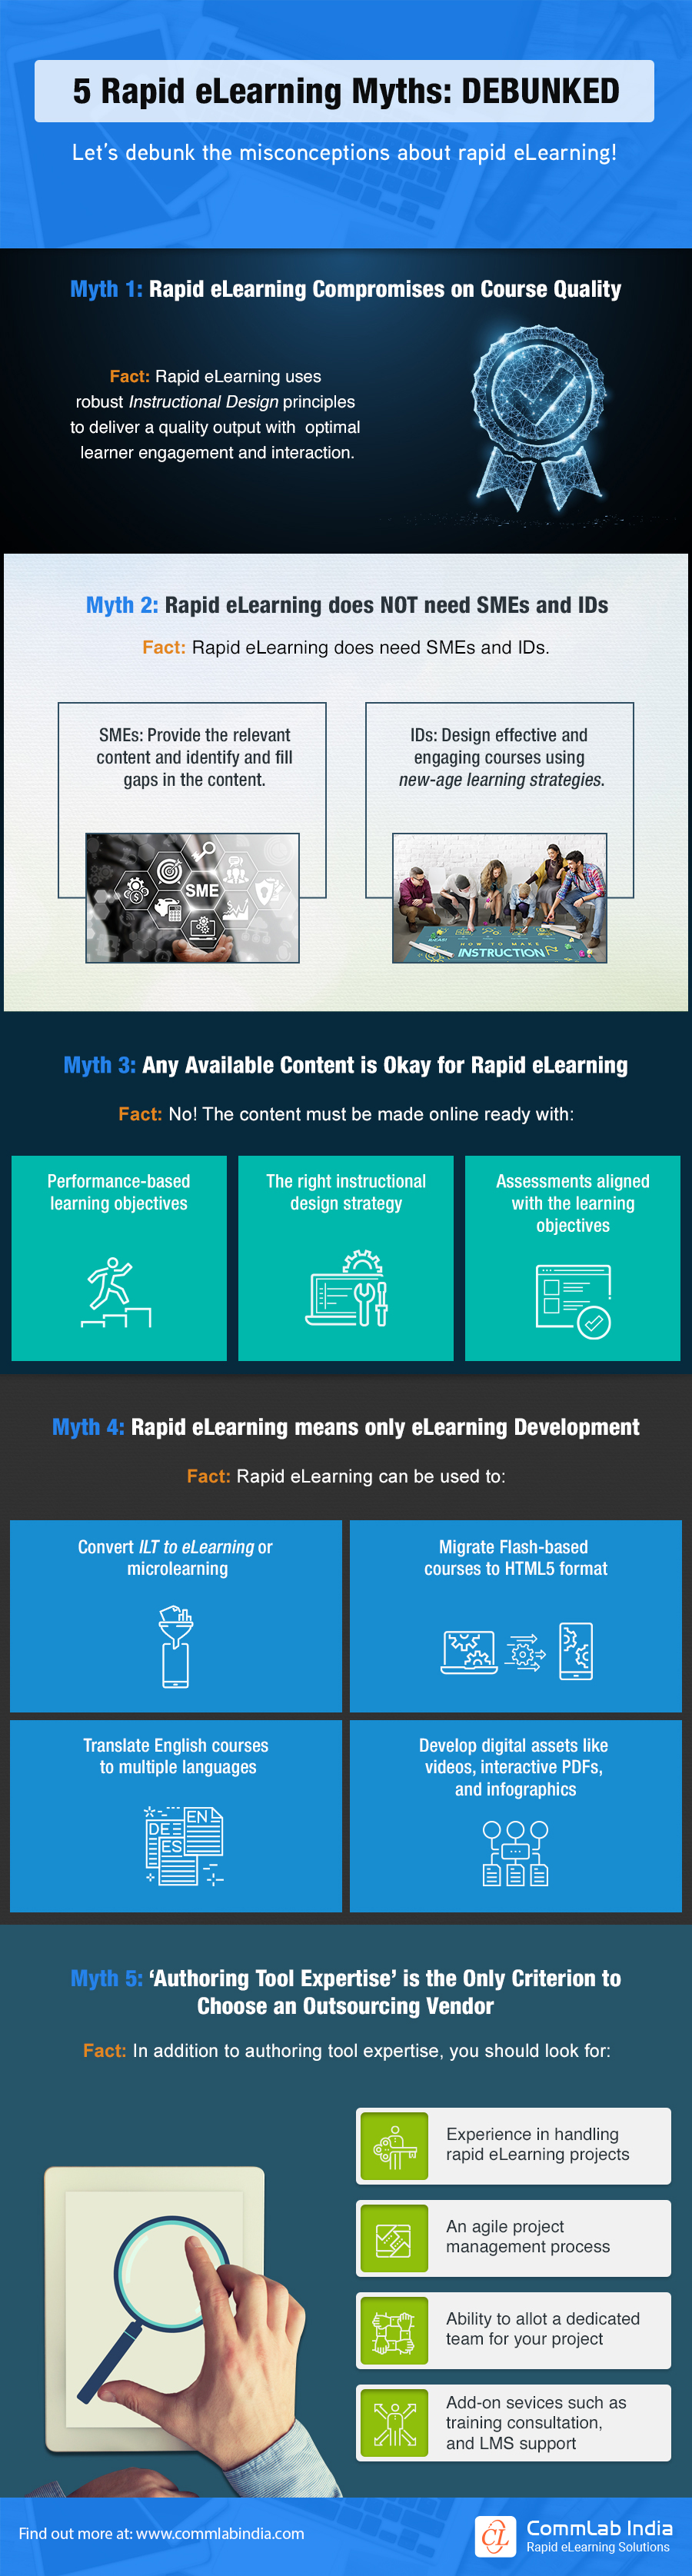 Rapid eLearning: Face-off Between the Myths and Facts